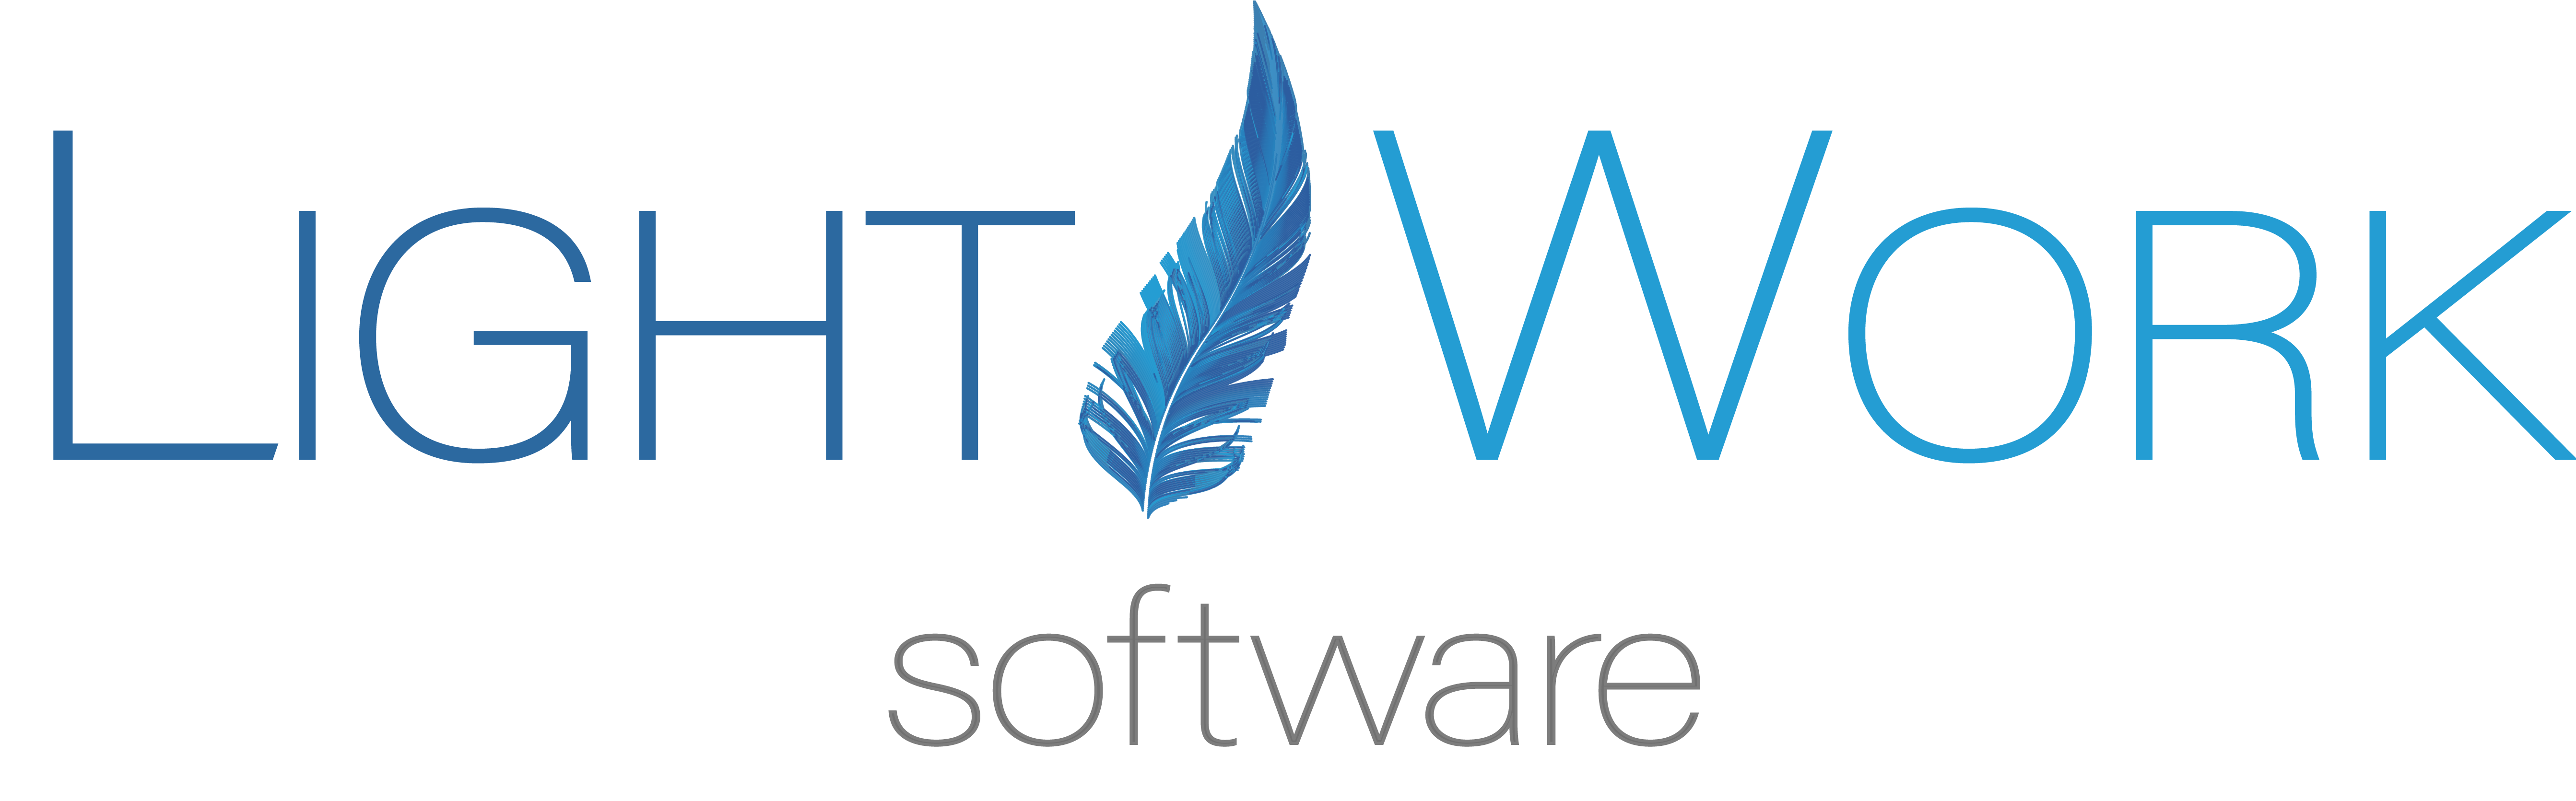 LightWork Talent Management - Stonefield Systems Group Inc